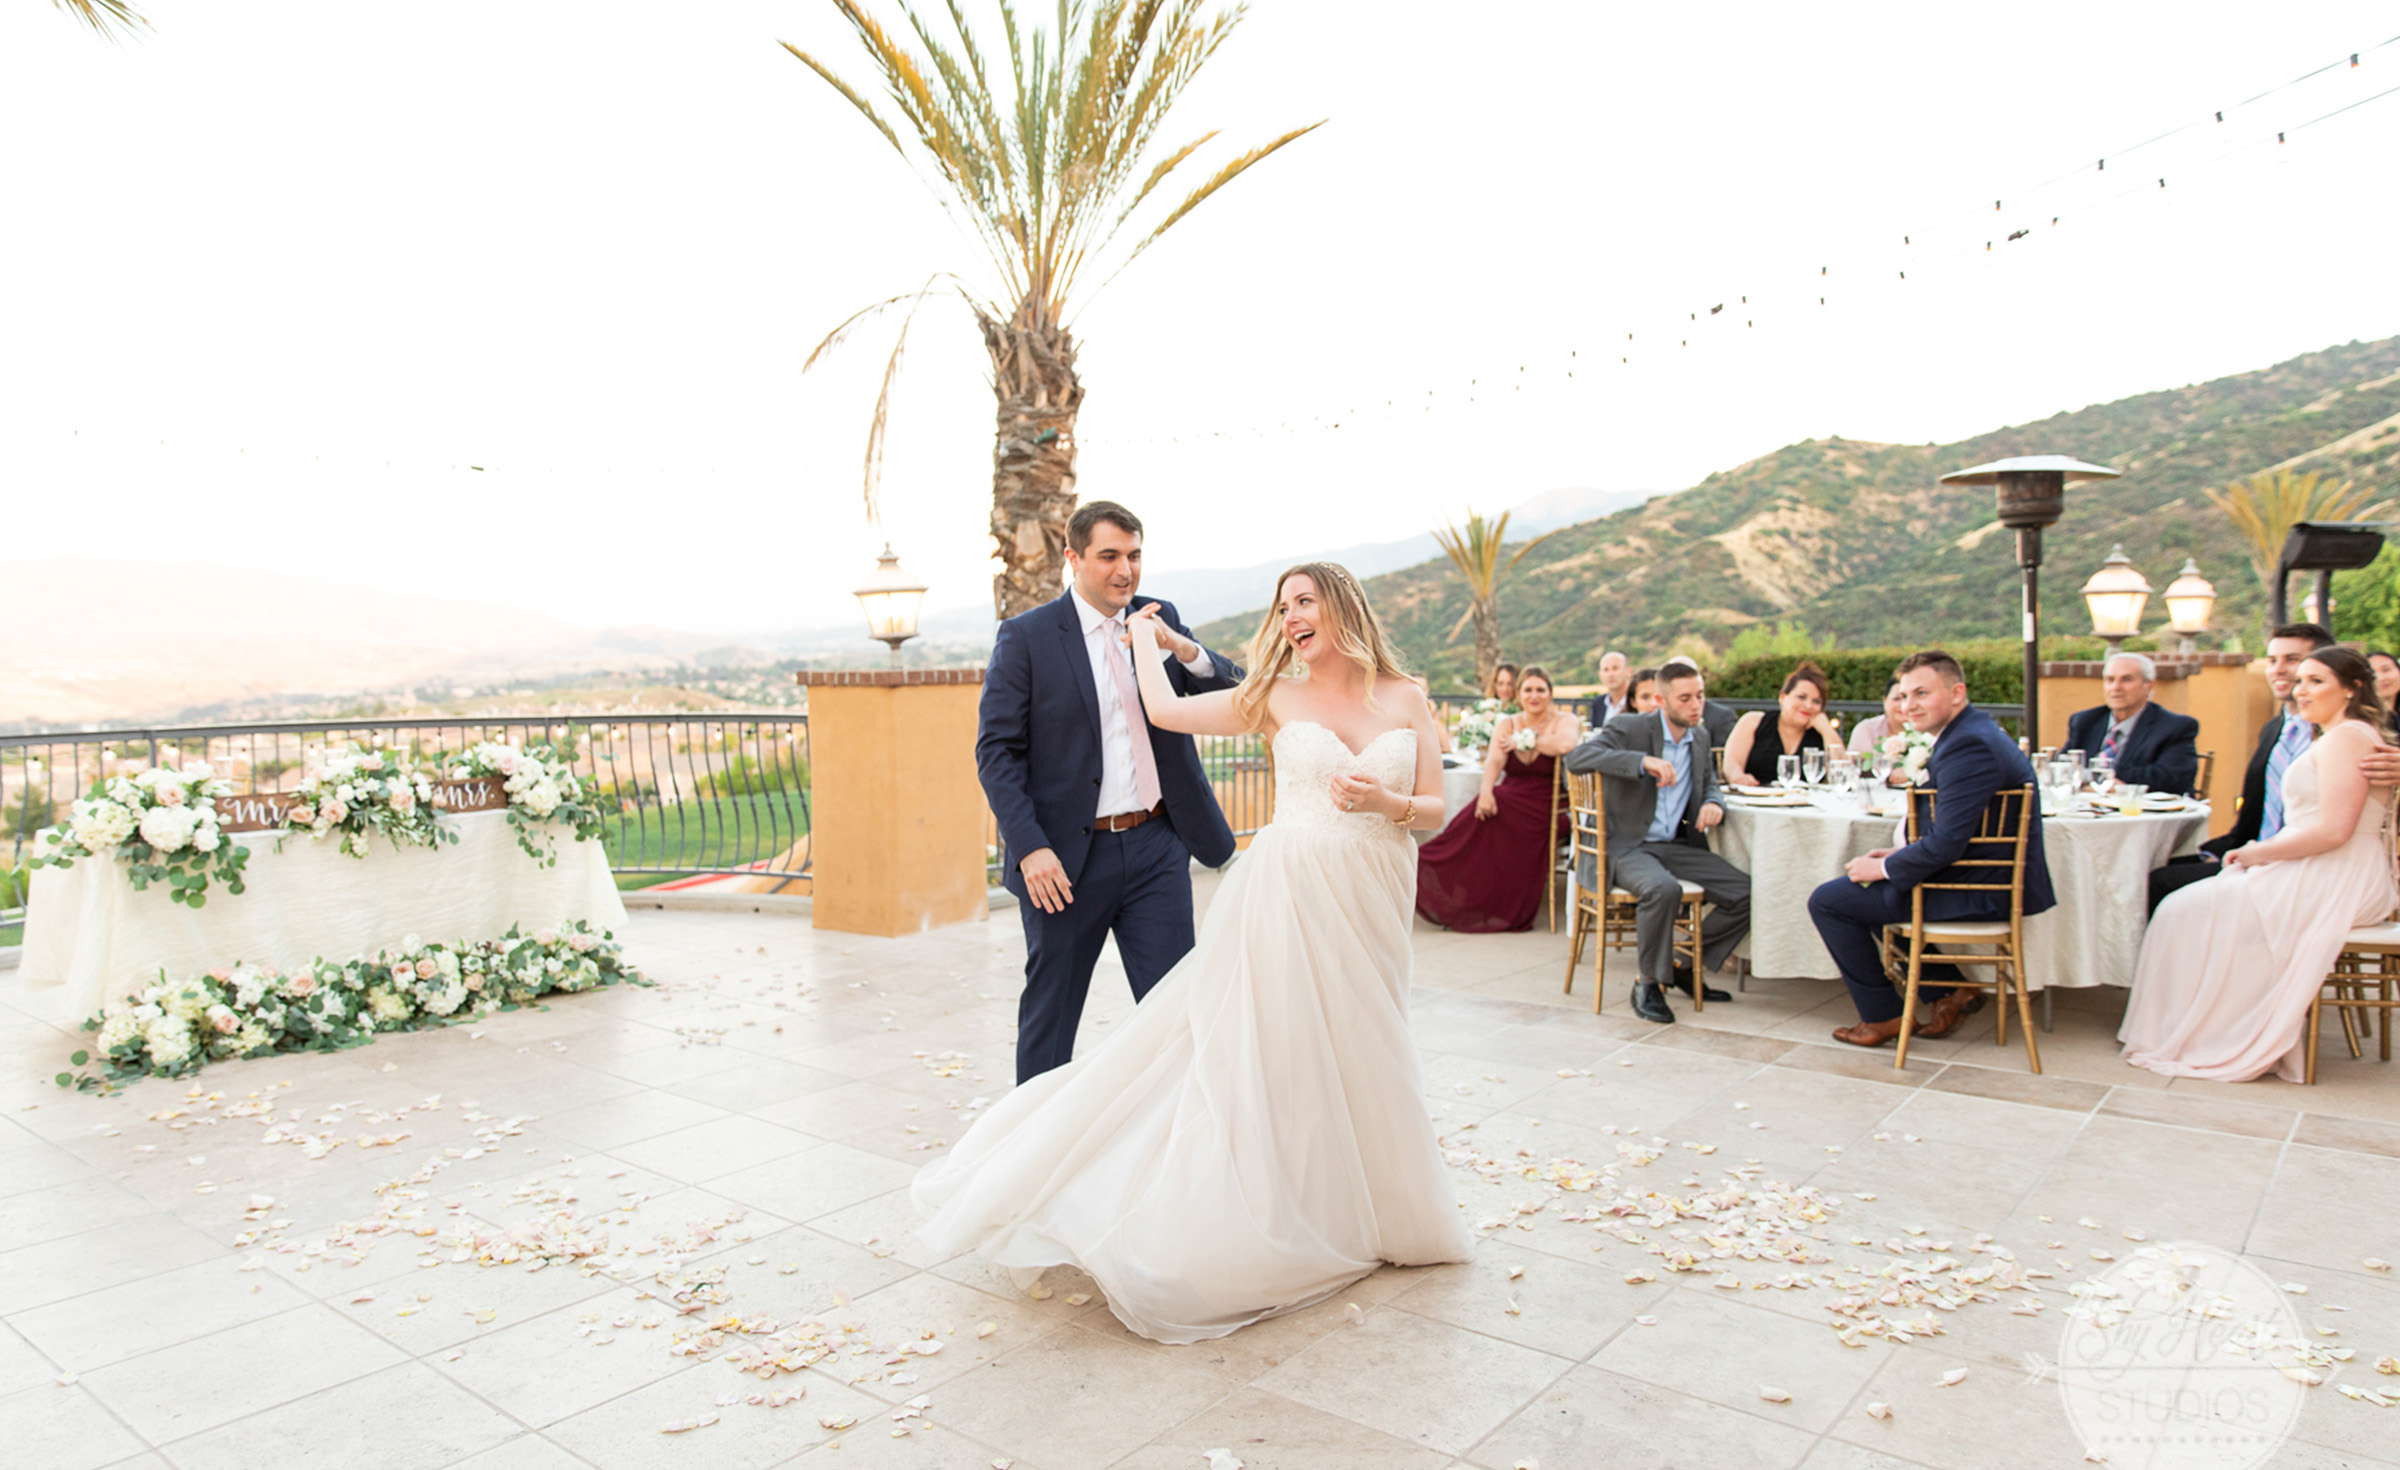 Outdoor terrace reception - The Retreat - Corona, California - Riverside County - Wedgewood Weddings